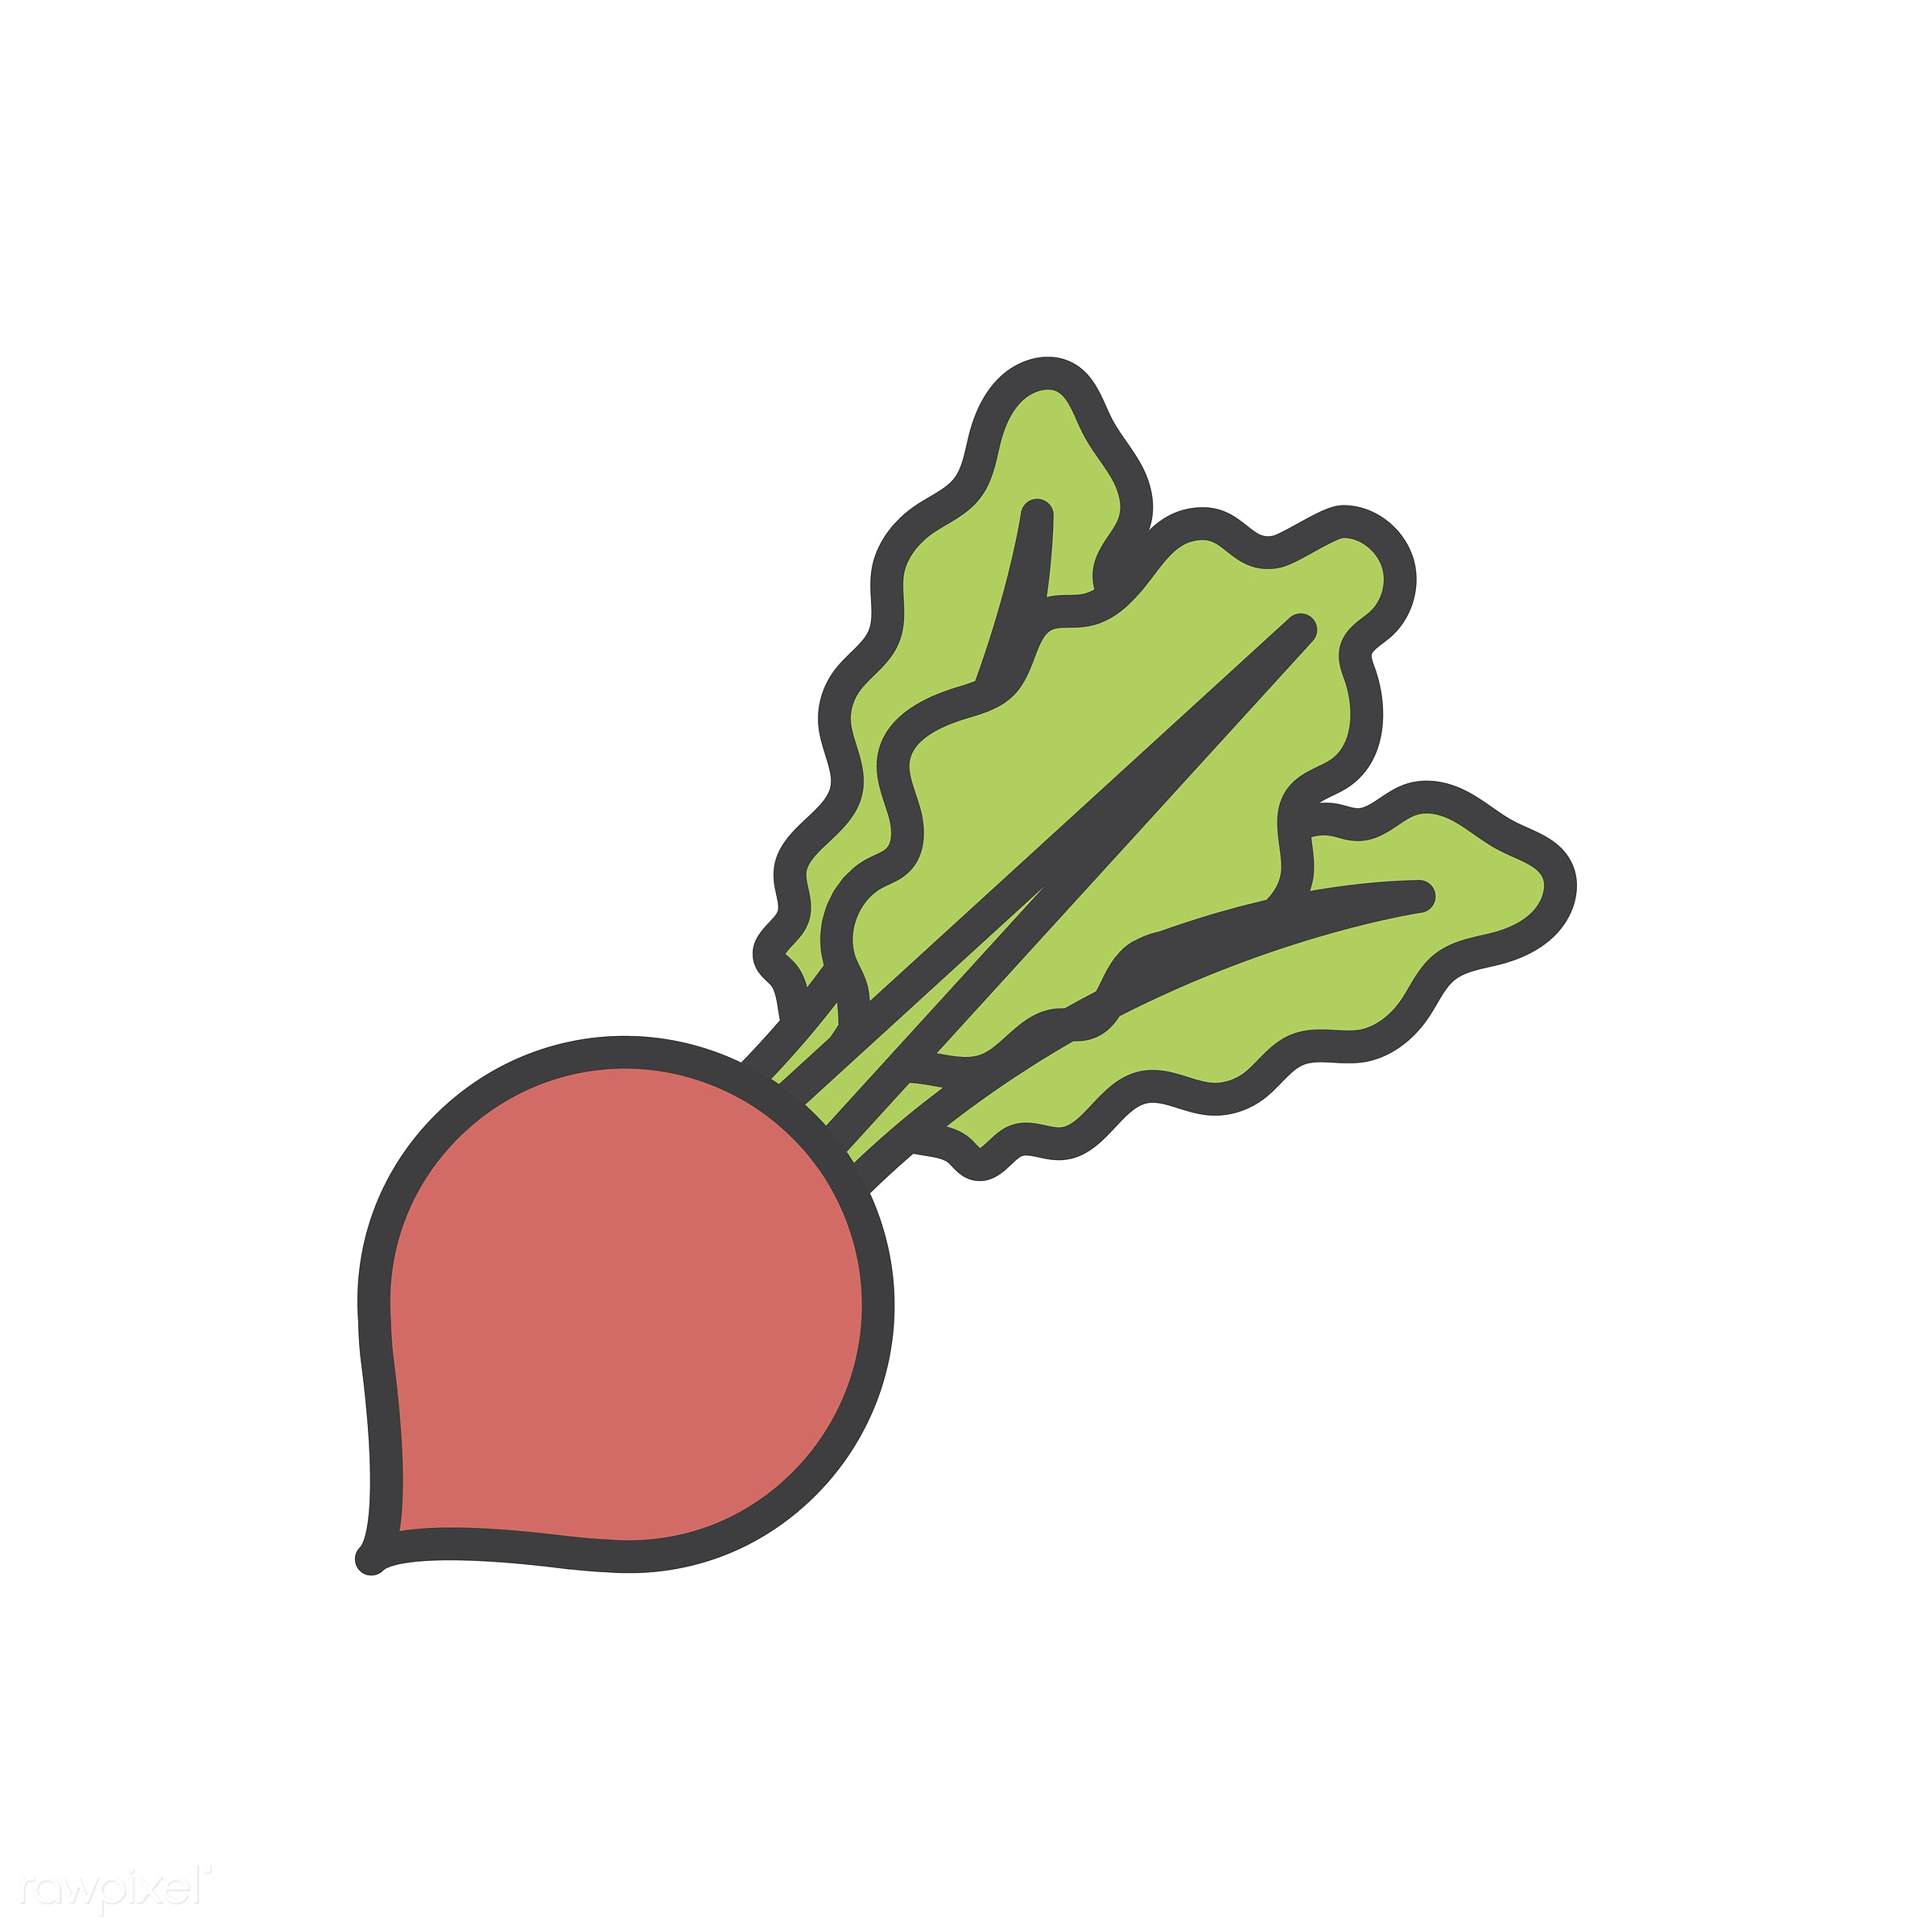 food, abode, adults, comfort, cozy, dwelling, home, homely, house, household, living, pad, radish, residence, vector,...